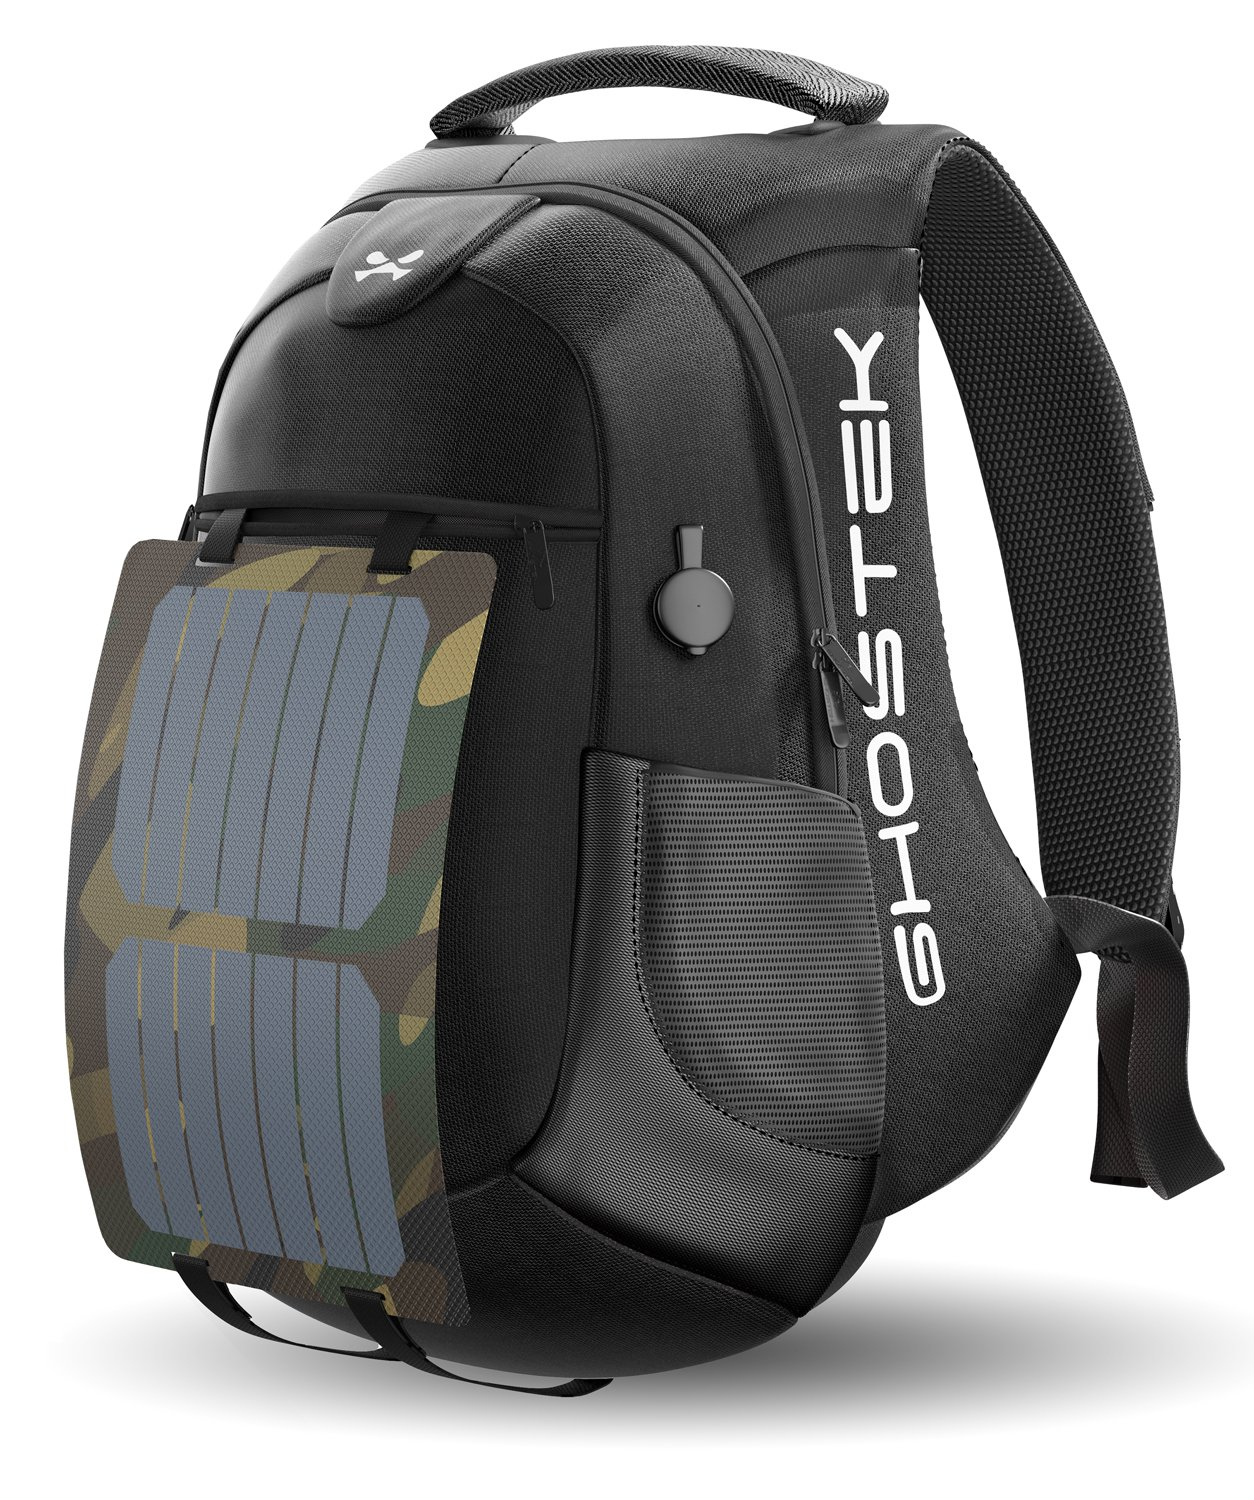 Ghostek NRGsolar Series 40L Eco Computer Laptop Messenger Backpack Book Bag + 16,000mAh Power Bank with 5 USB Ports | Water Resistant | 8.8-Watt Solar Panel | Laptops Up To 15.6'' (Black) by Ghostek